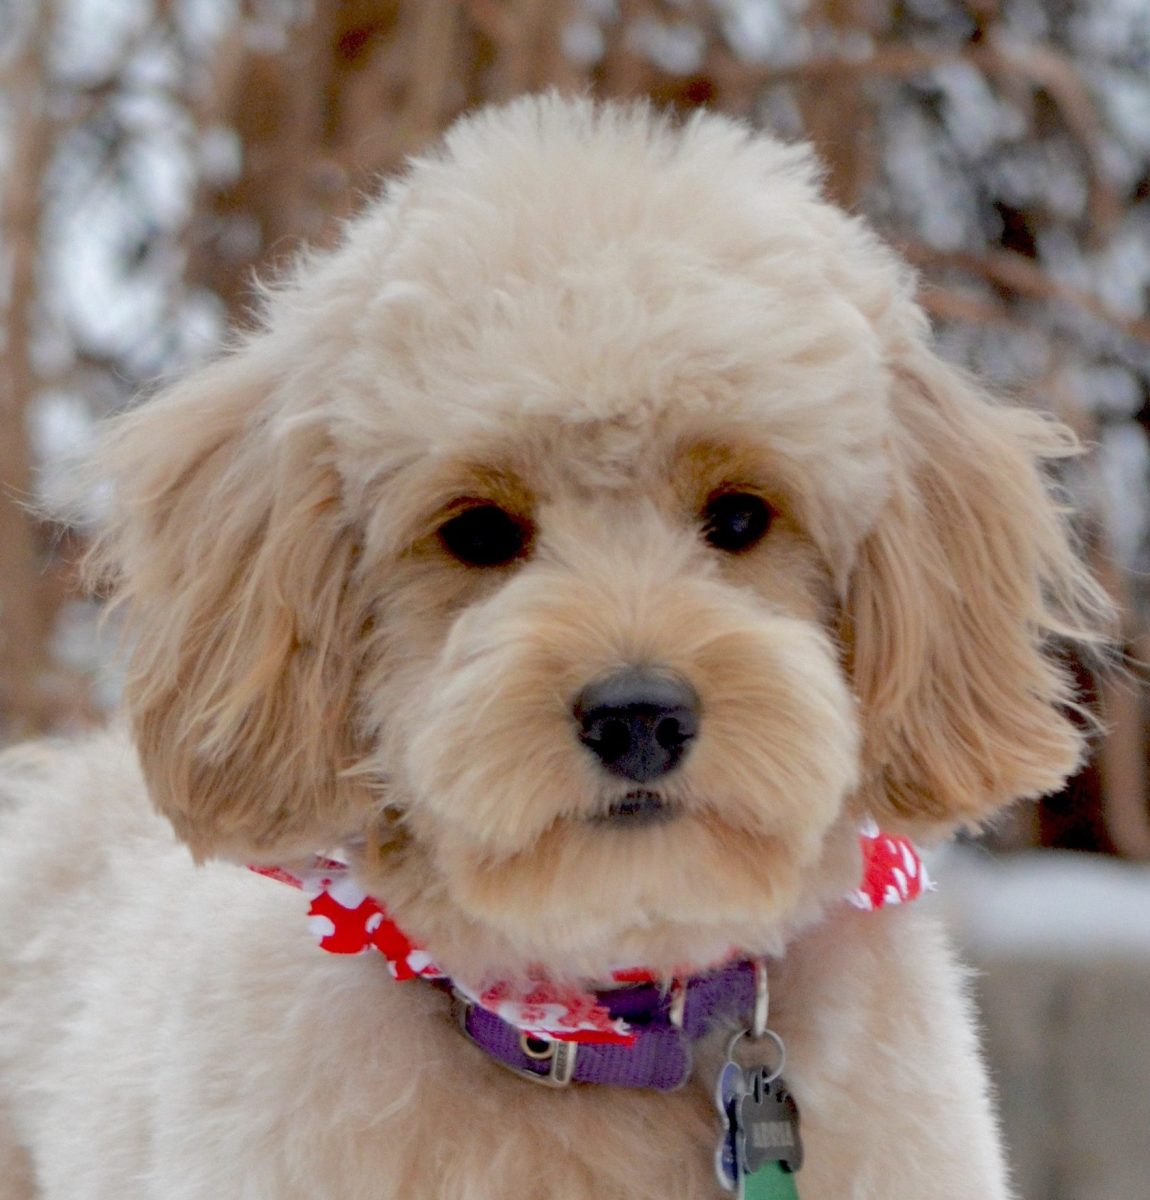 goldendoodle haircuts golden doodle haircut doggie stuff goldendoodle haircuts goldendoodle grooming timberidge